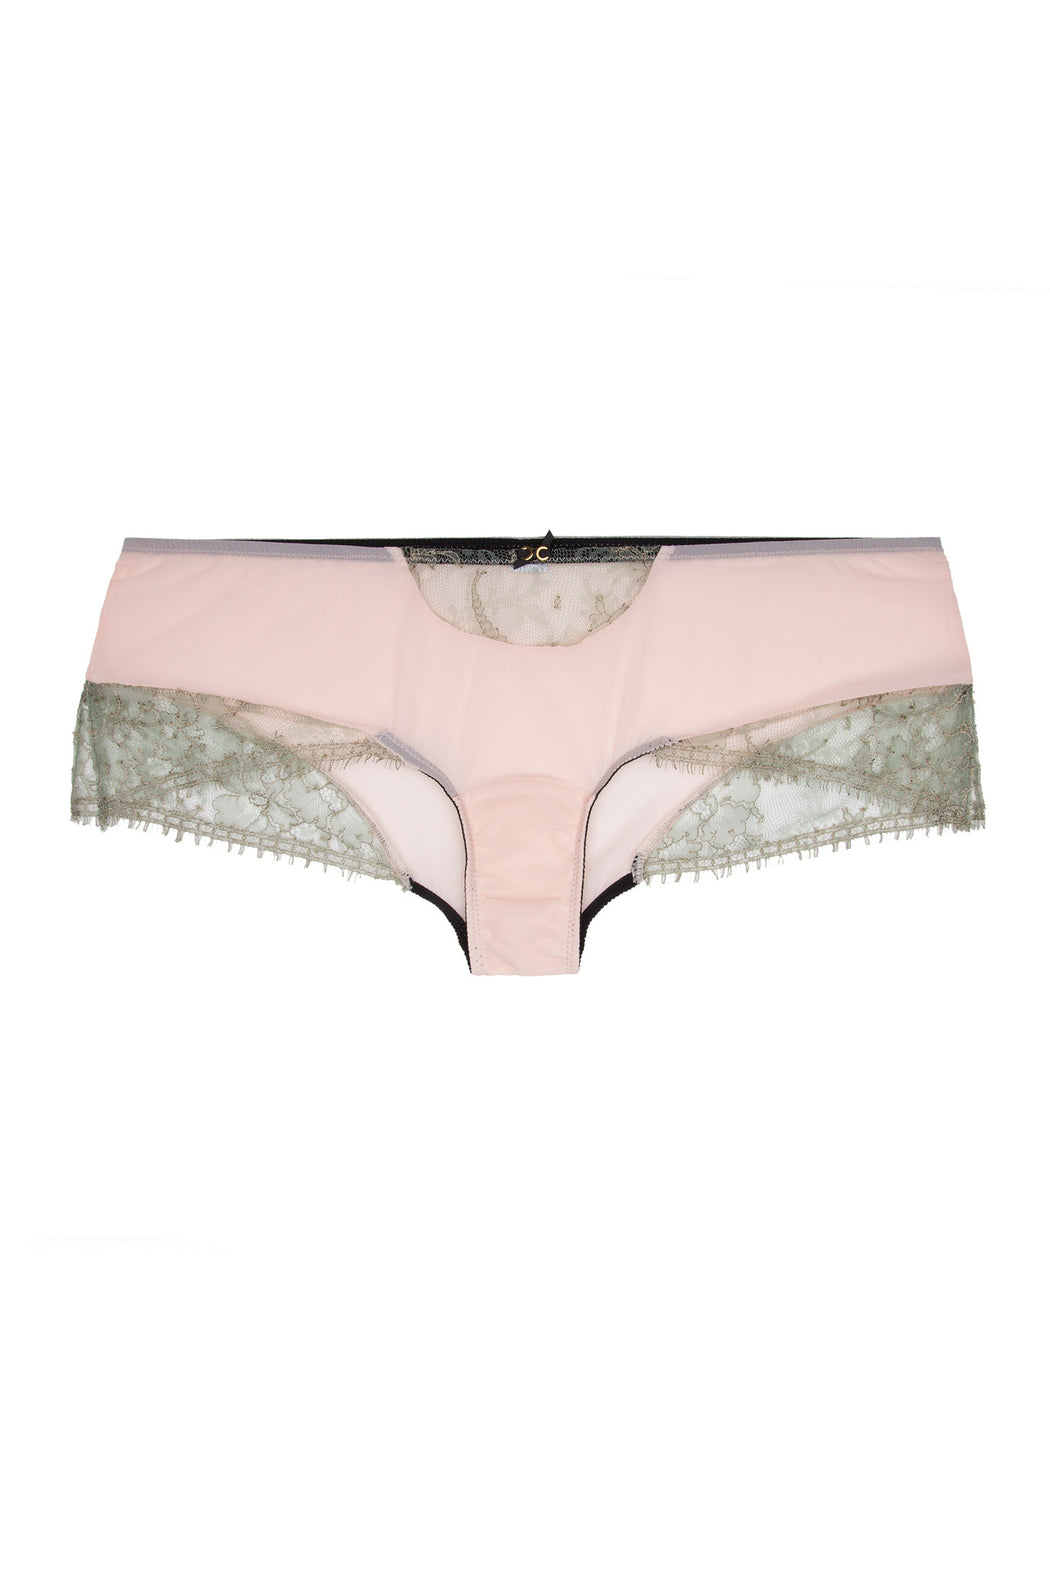 Pink and lace Isadora Boyshort by Lost in Wonderland workingirls lingerie